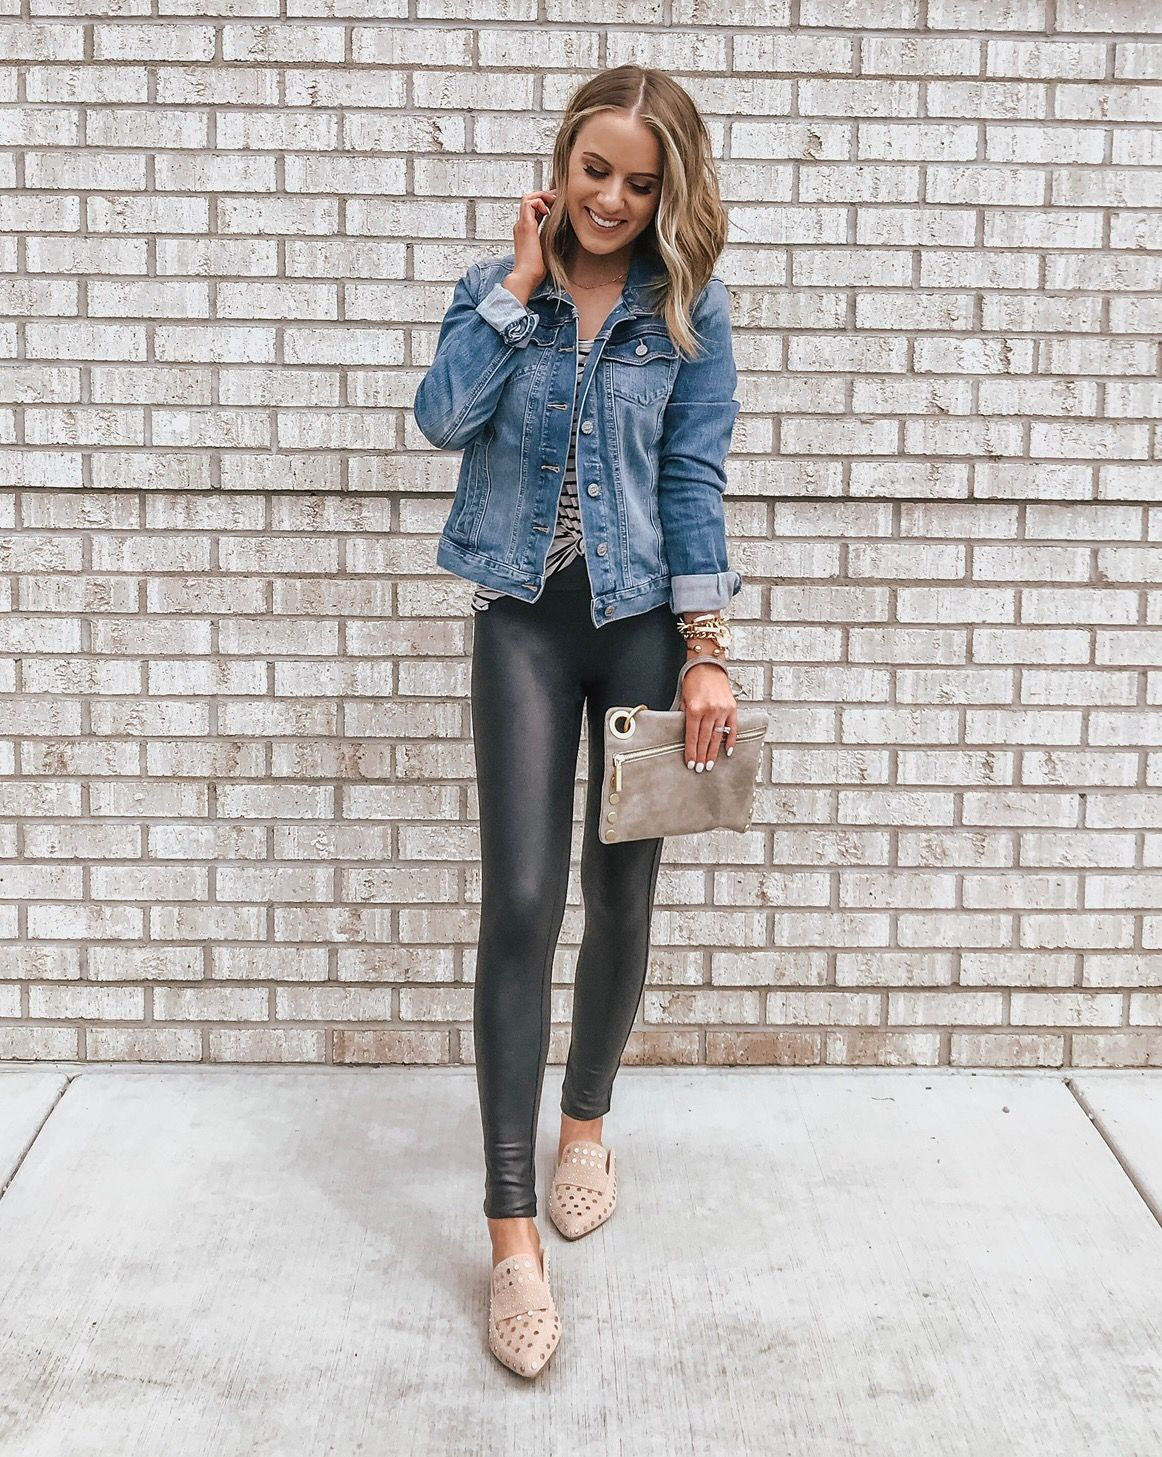 1f590f39dc366a Love these faux leather leggings with the studded mules and denim jacket!